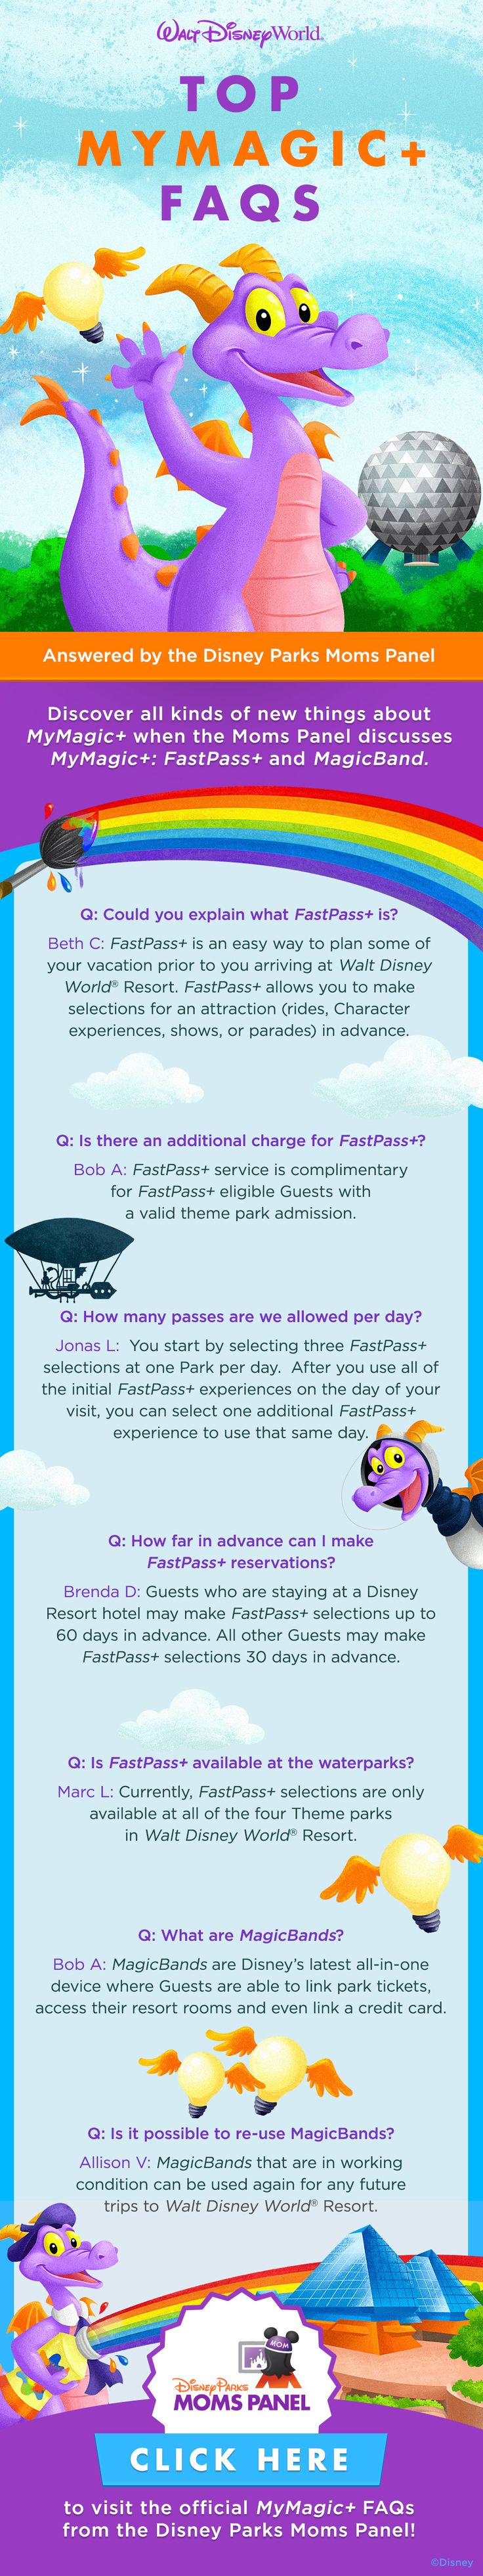 The Disney Parks Moms Panel answers questions about MyMagic+ at Walt Disney World!